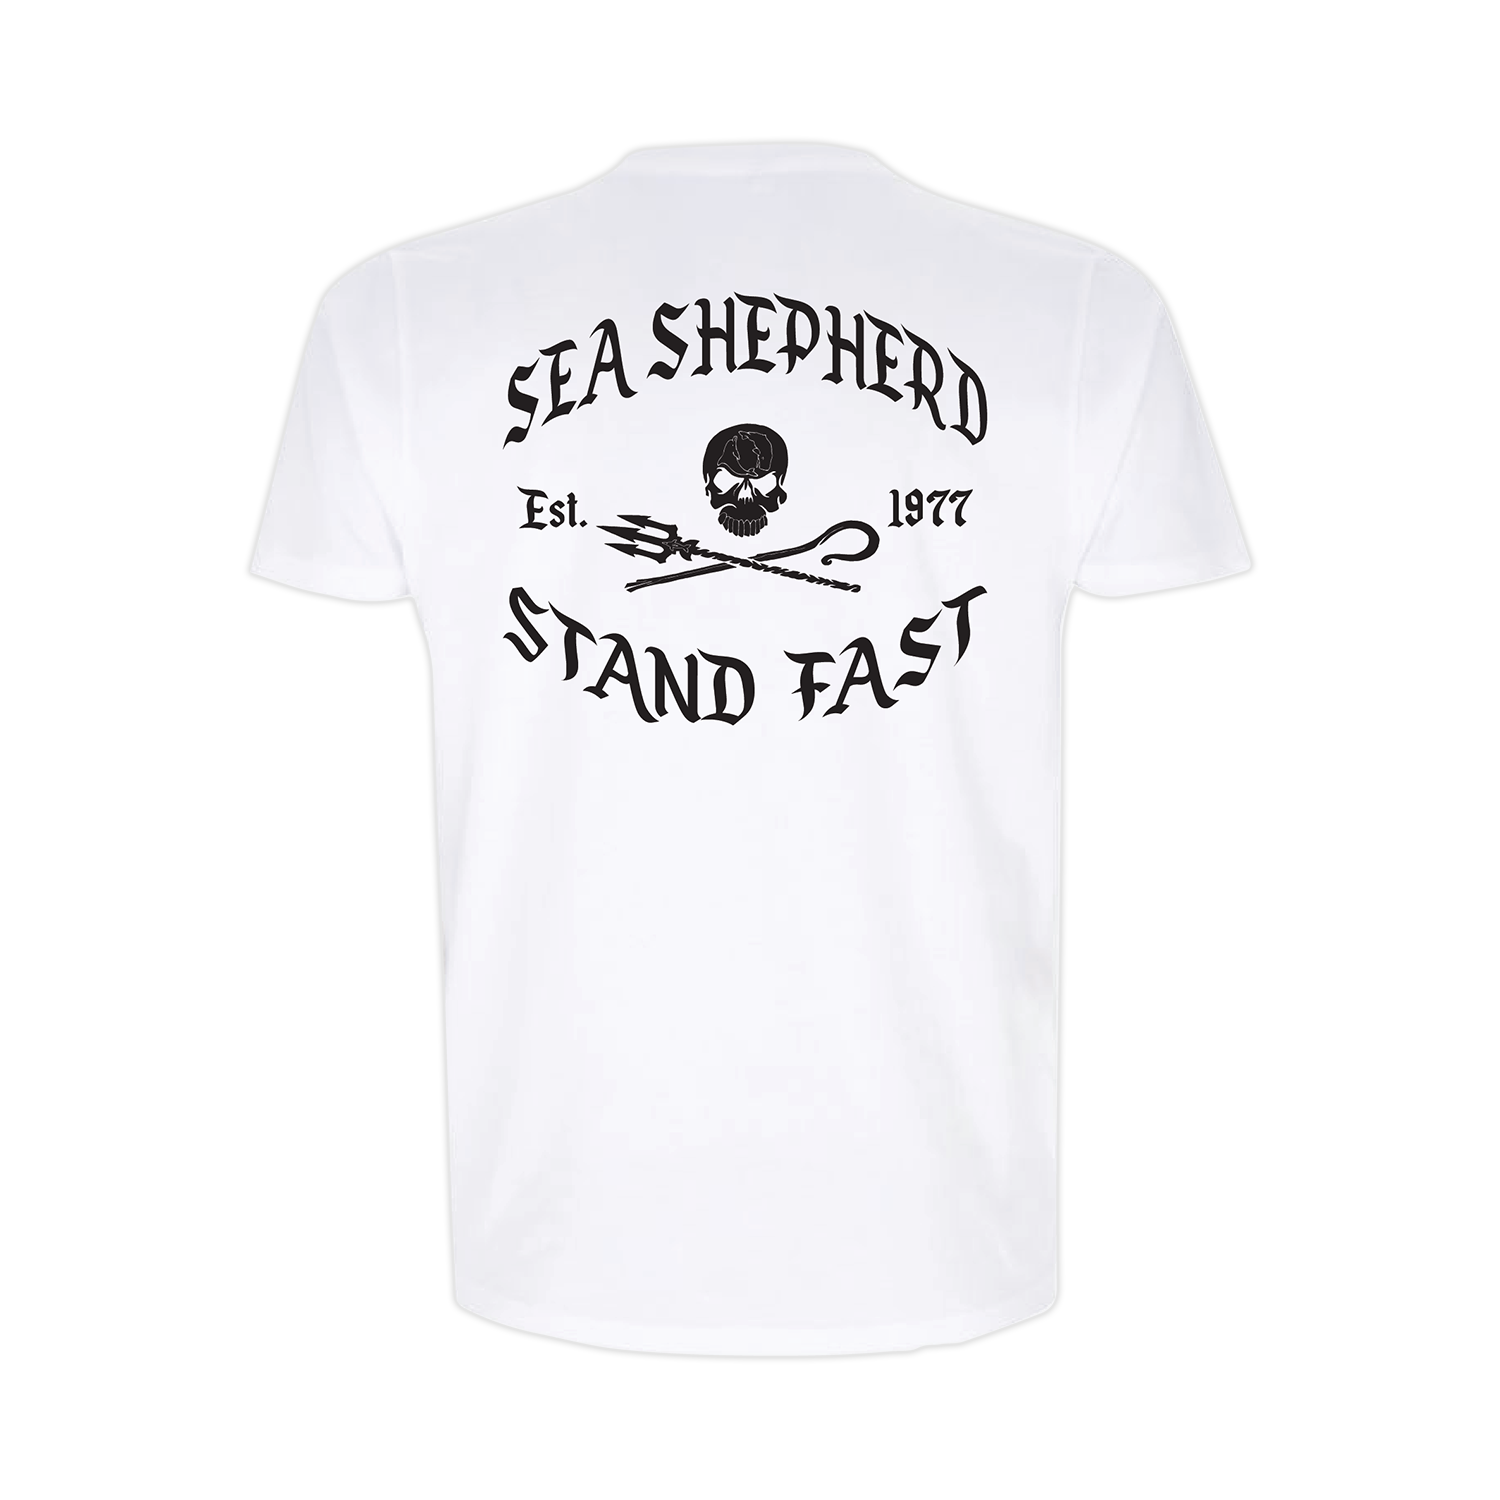 Sea Shepherd - Standfast - Great White - 100% Organic Cotton S/S Tee - White